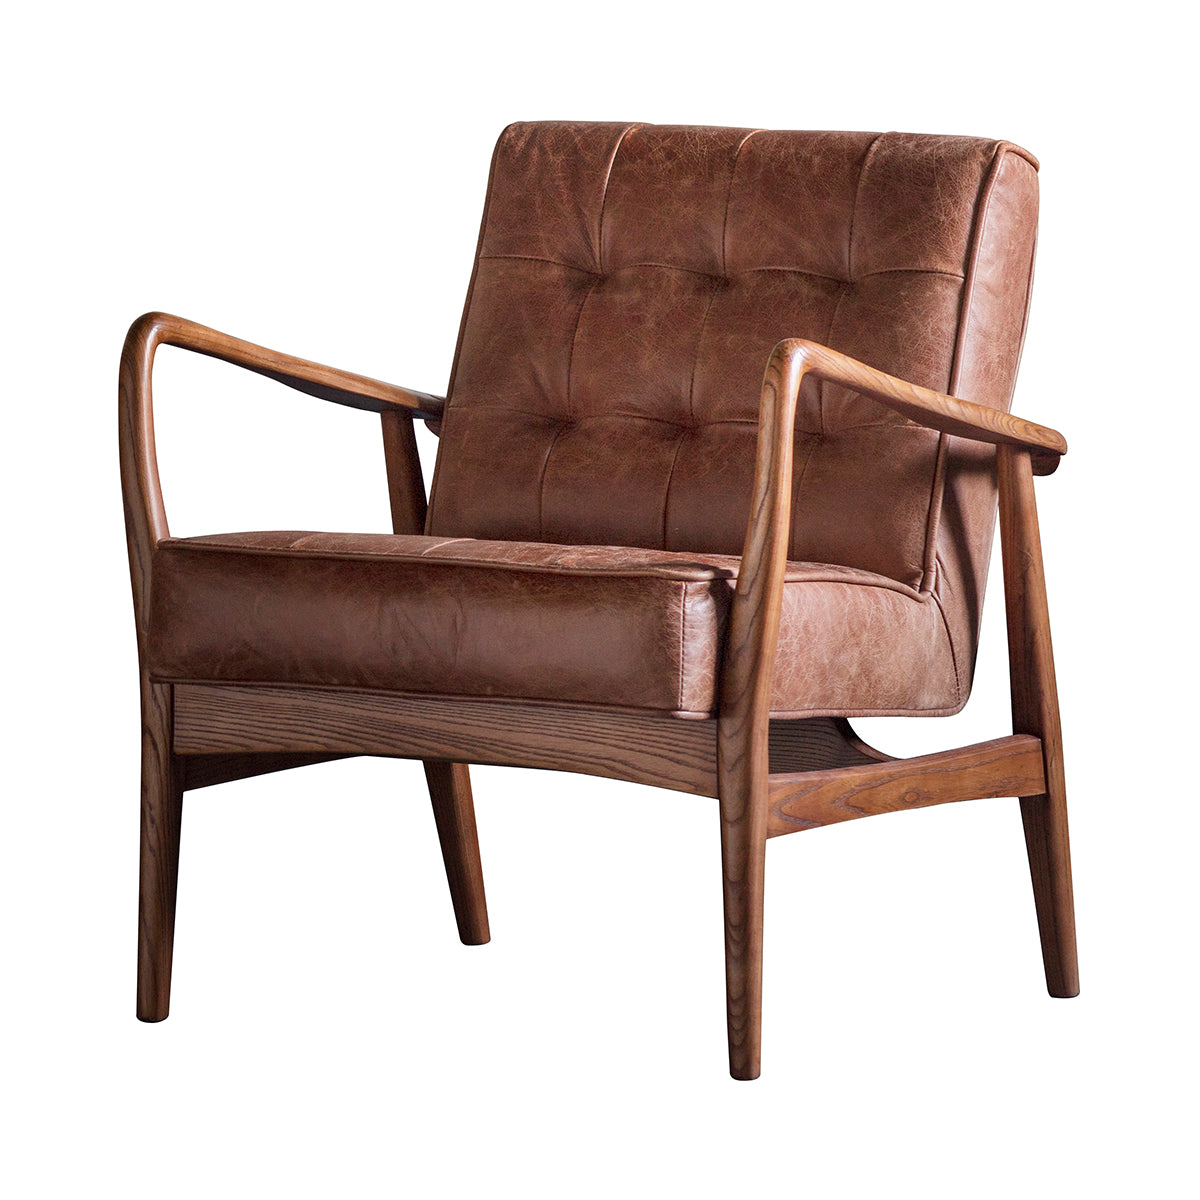 Strange Barton Armchair Vintage Brown Leather Download Free Architecture Designs Scobabritishbridgeorg